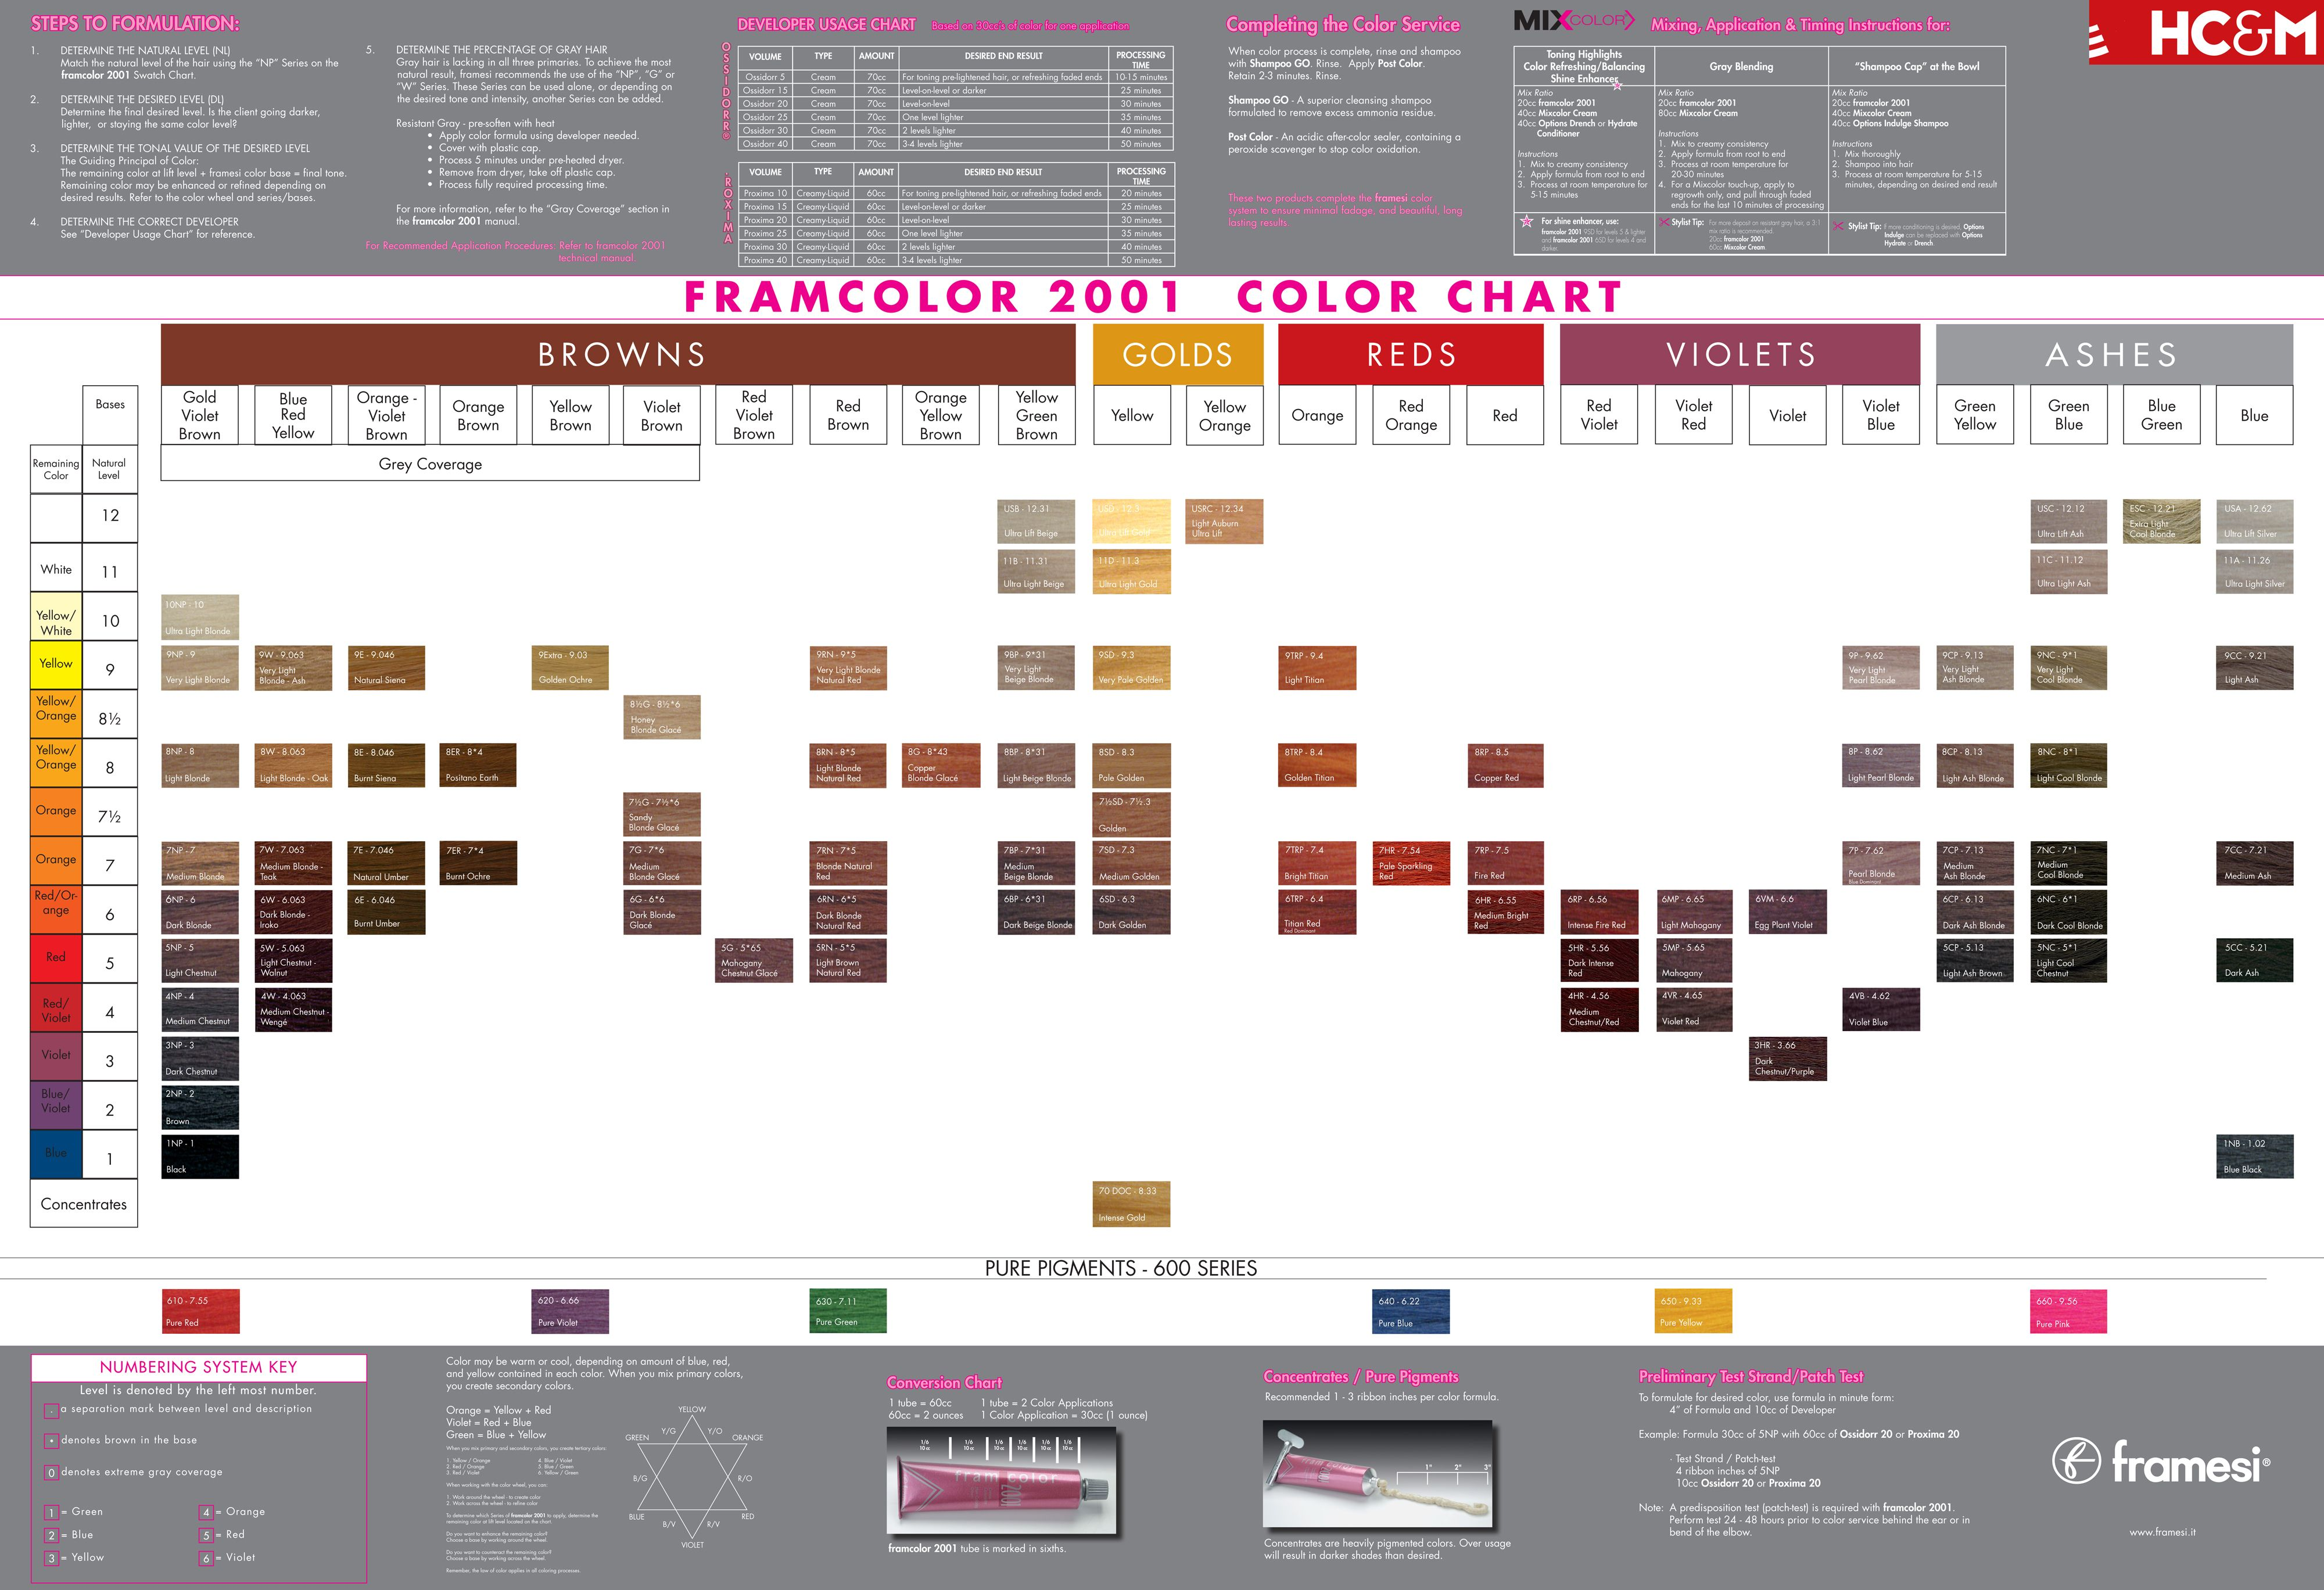 Framesi framcolor 2001 color chart all things hair framesi framcolor 2001 color chart nvjuhfo Image collections